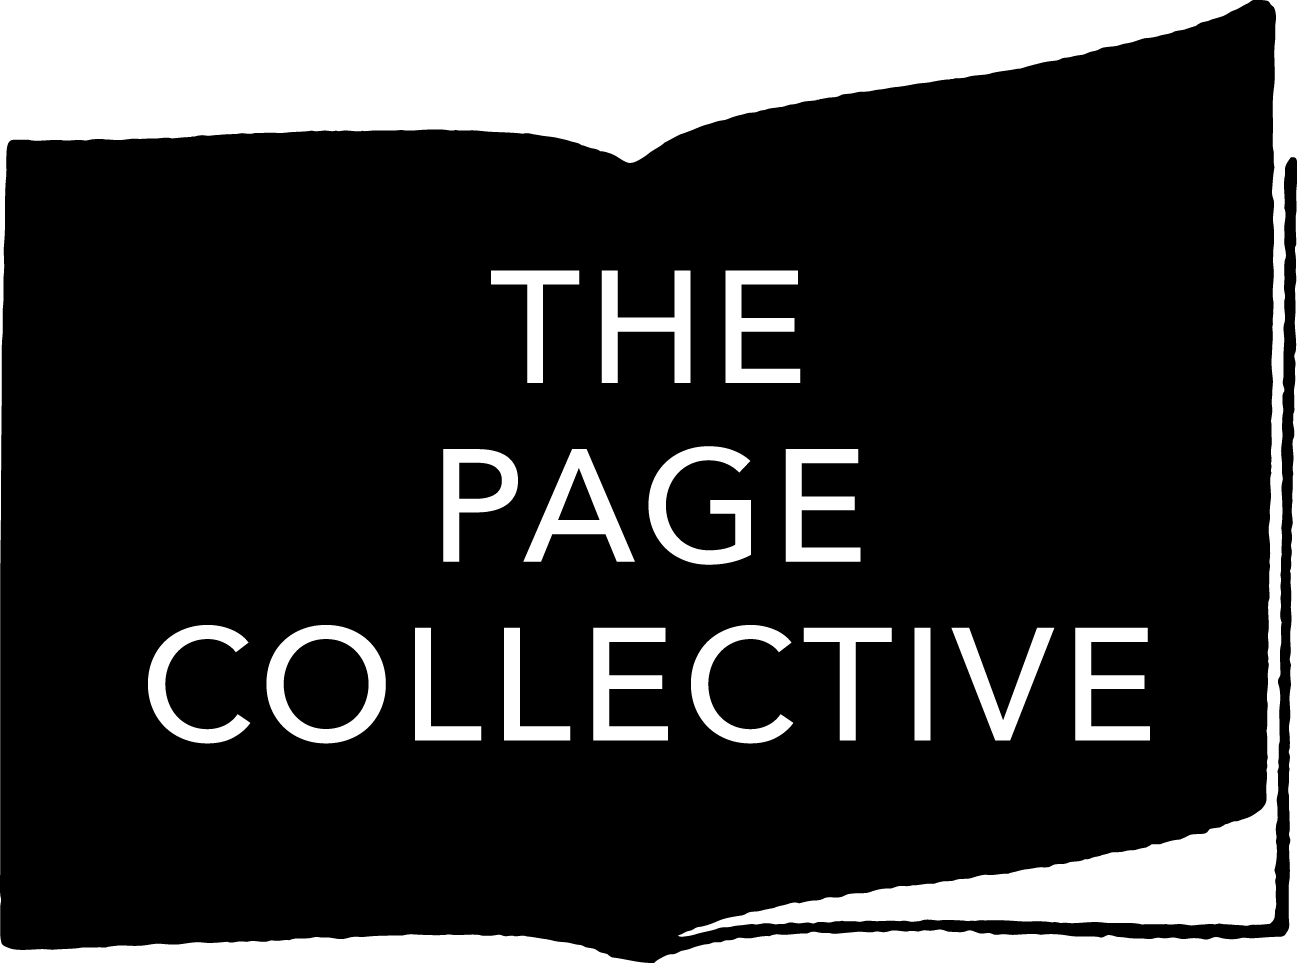 THE PAGE COLLECTIVE